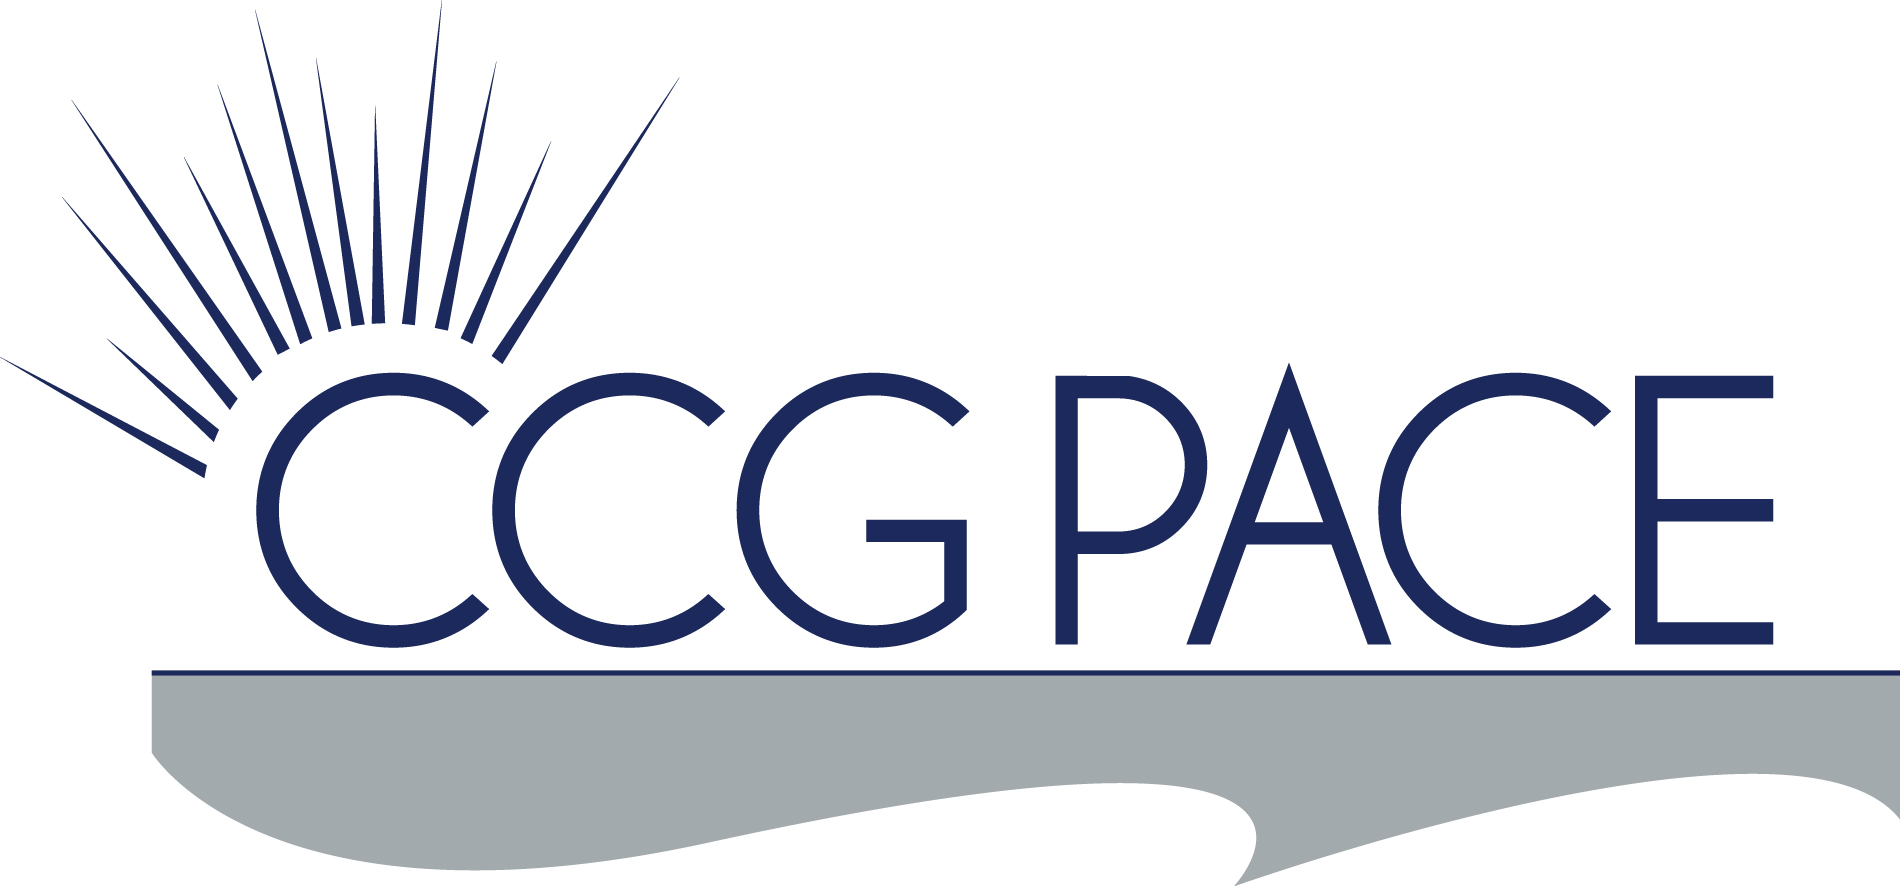 City Scape Capital Group - CCG PACE